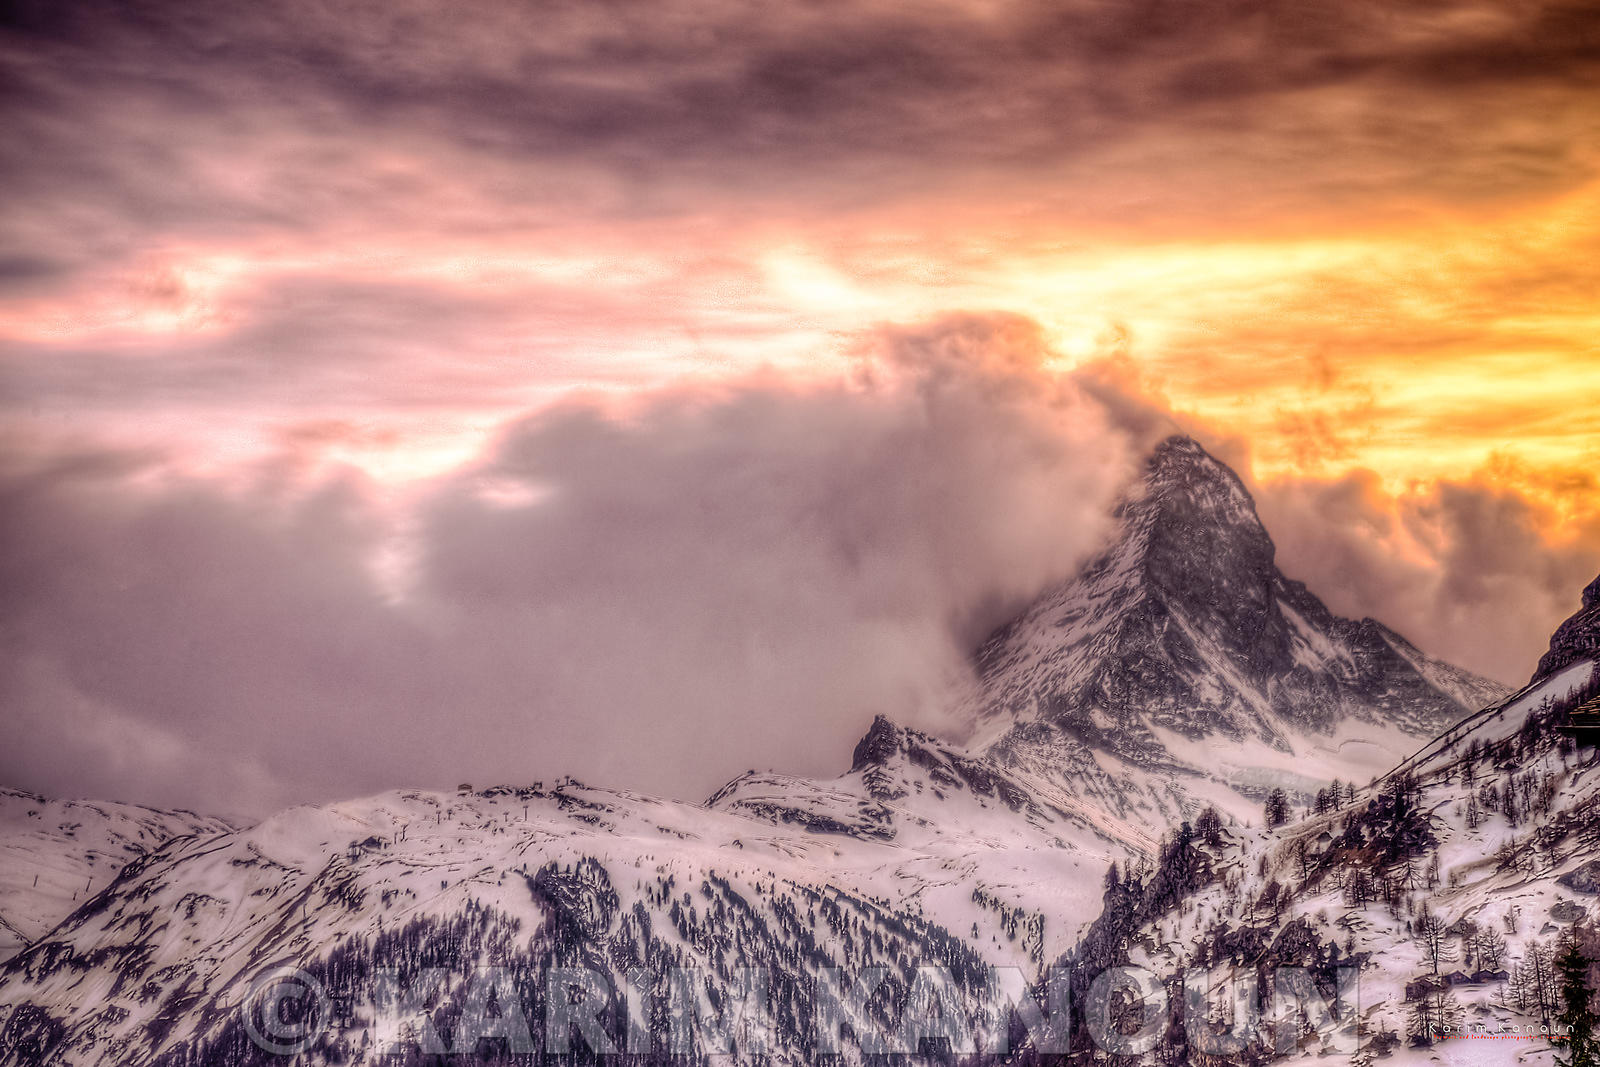 The Matterhorn with a volcano style sunset - Zermatt